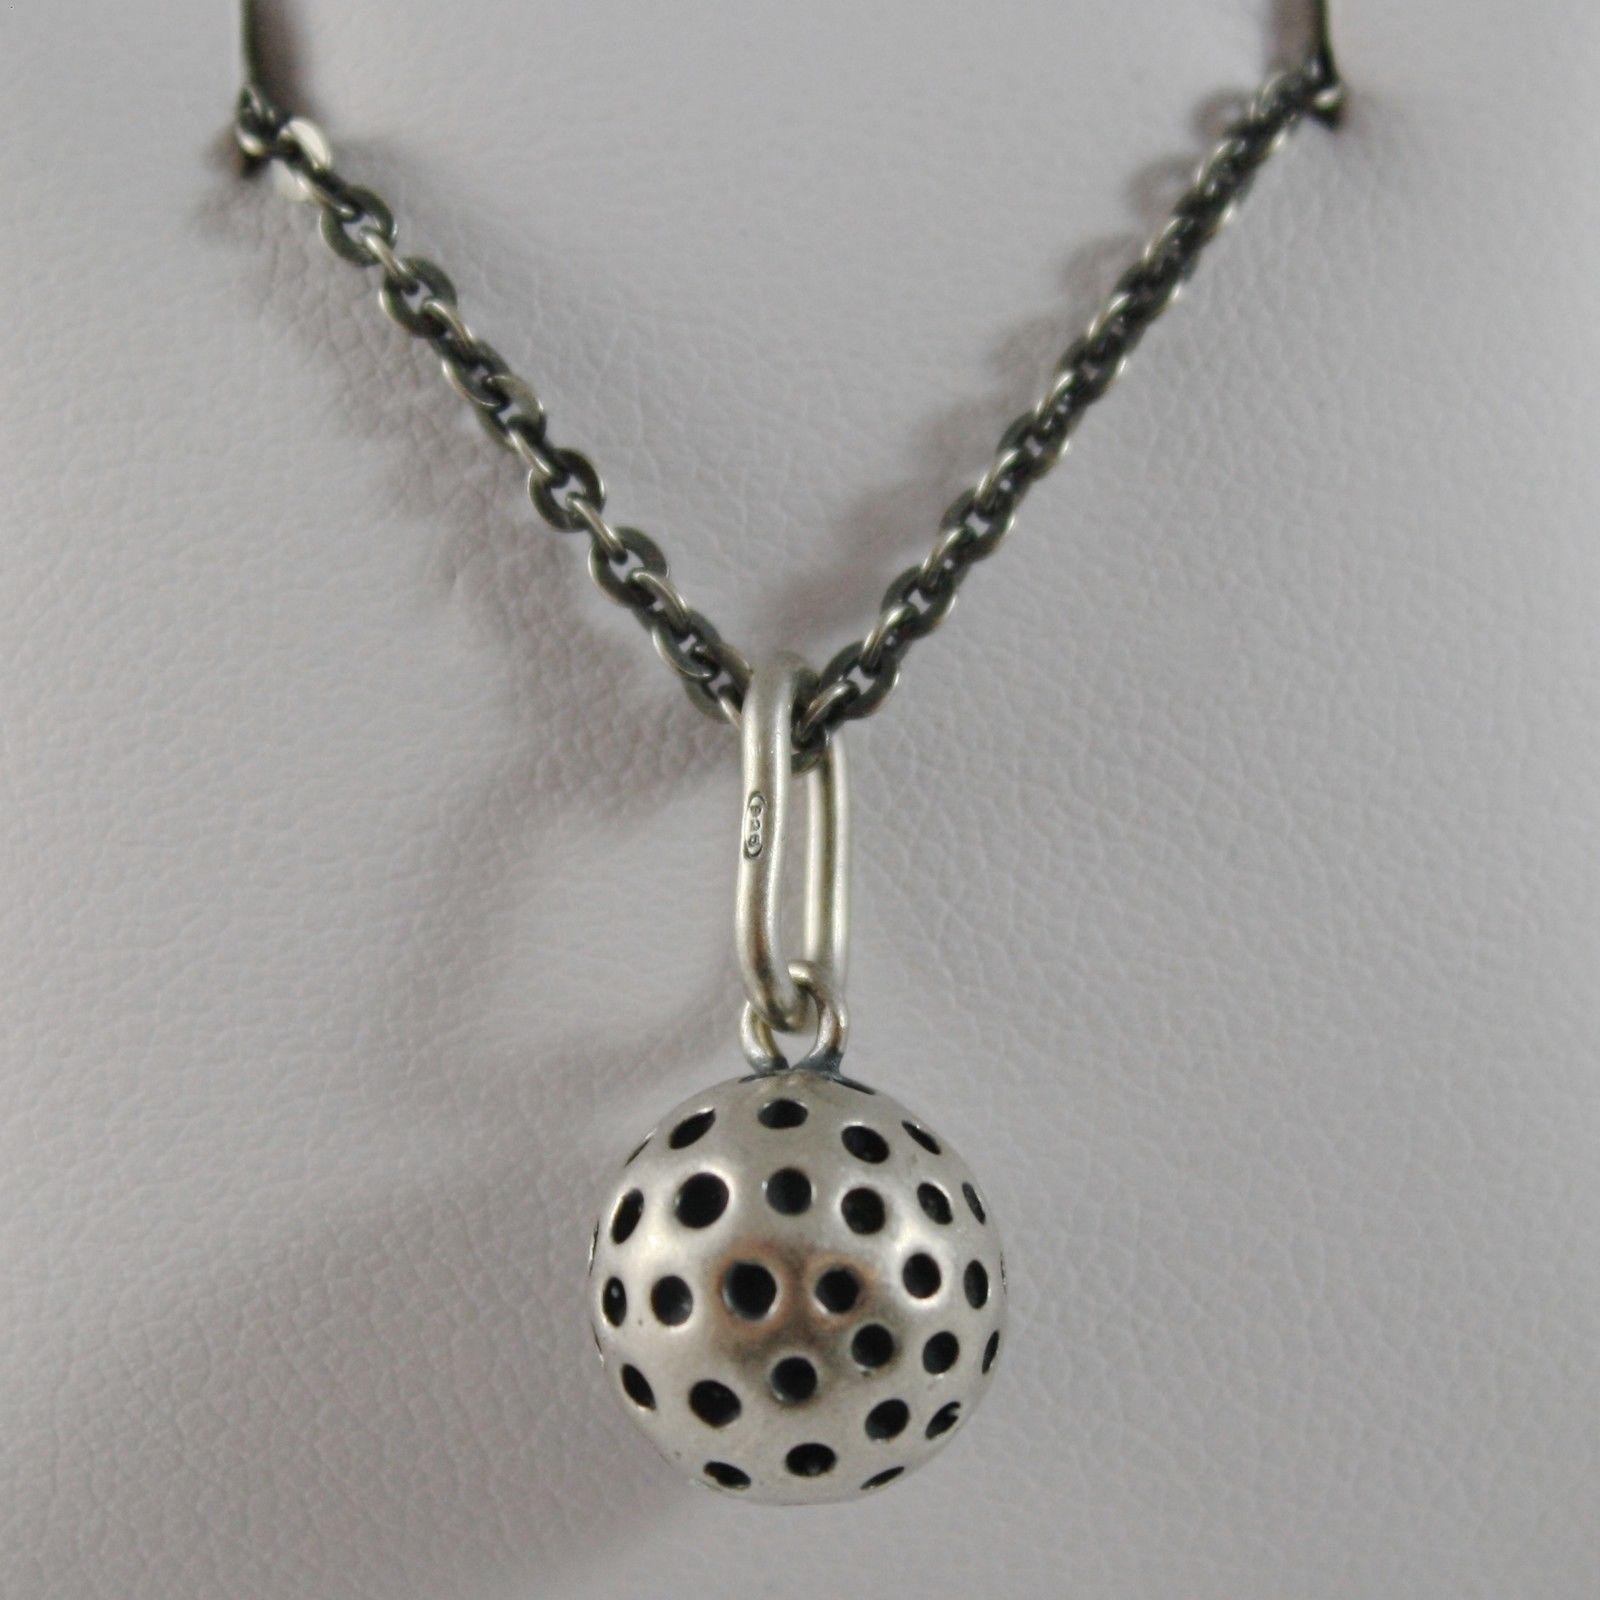 SOLID 925 BURNISHED SILVER NECKLACE, GOLF BALL BALLS PENDANT CHARM MADE IN ITALY